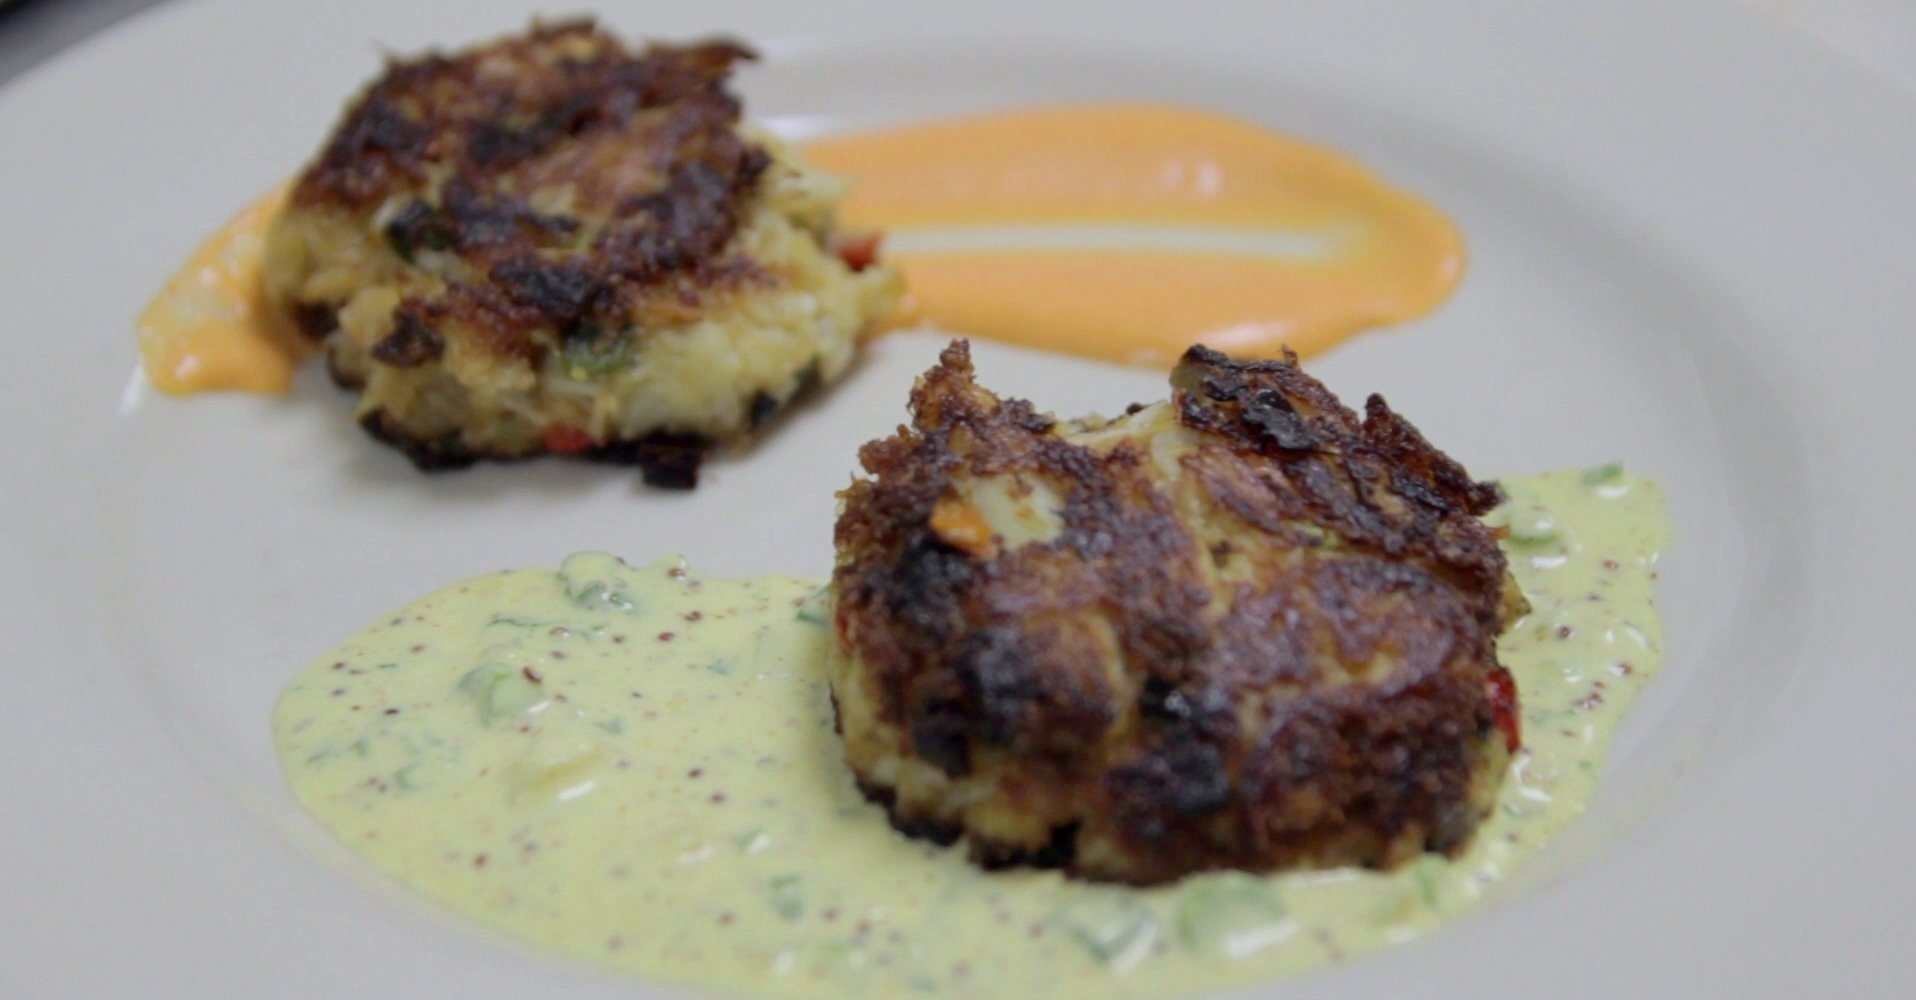 Fancy Crab Cakes For Your Oscar Party